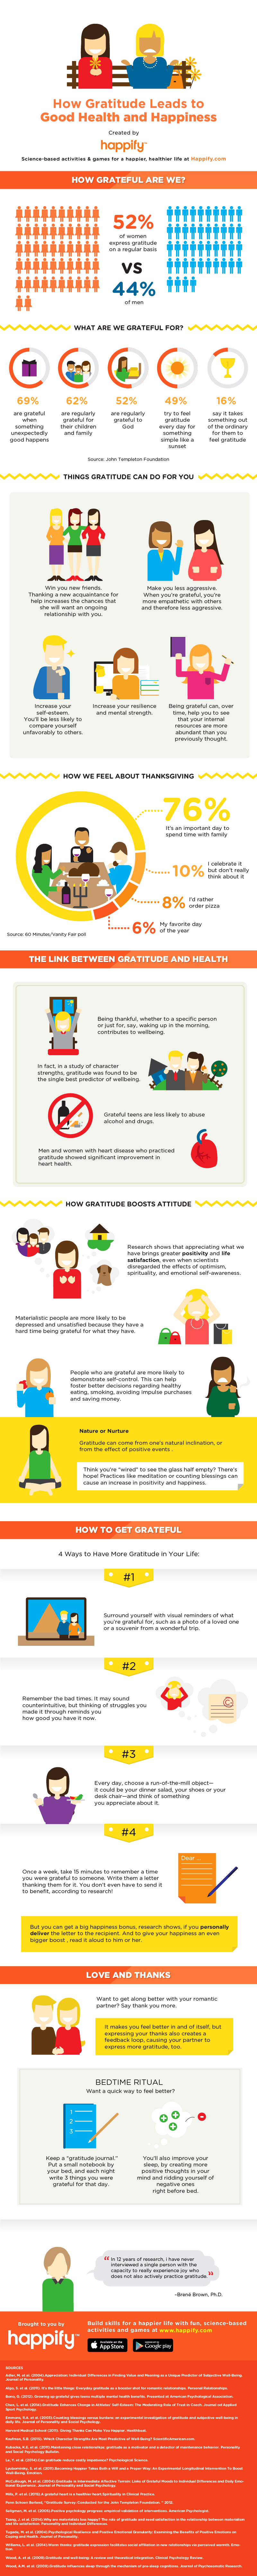 gratitude-infographic.png